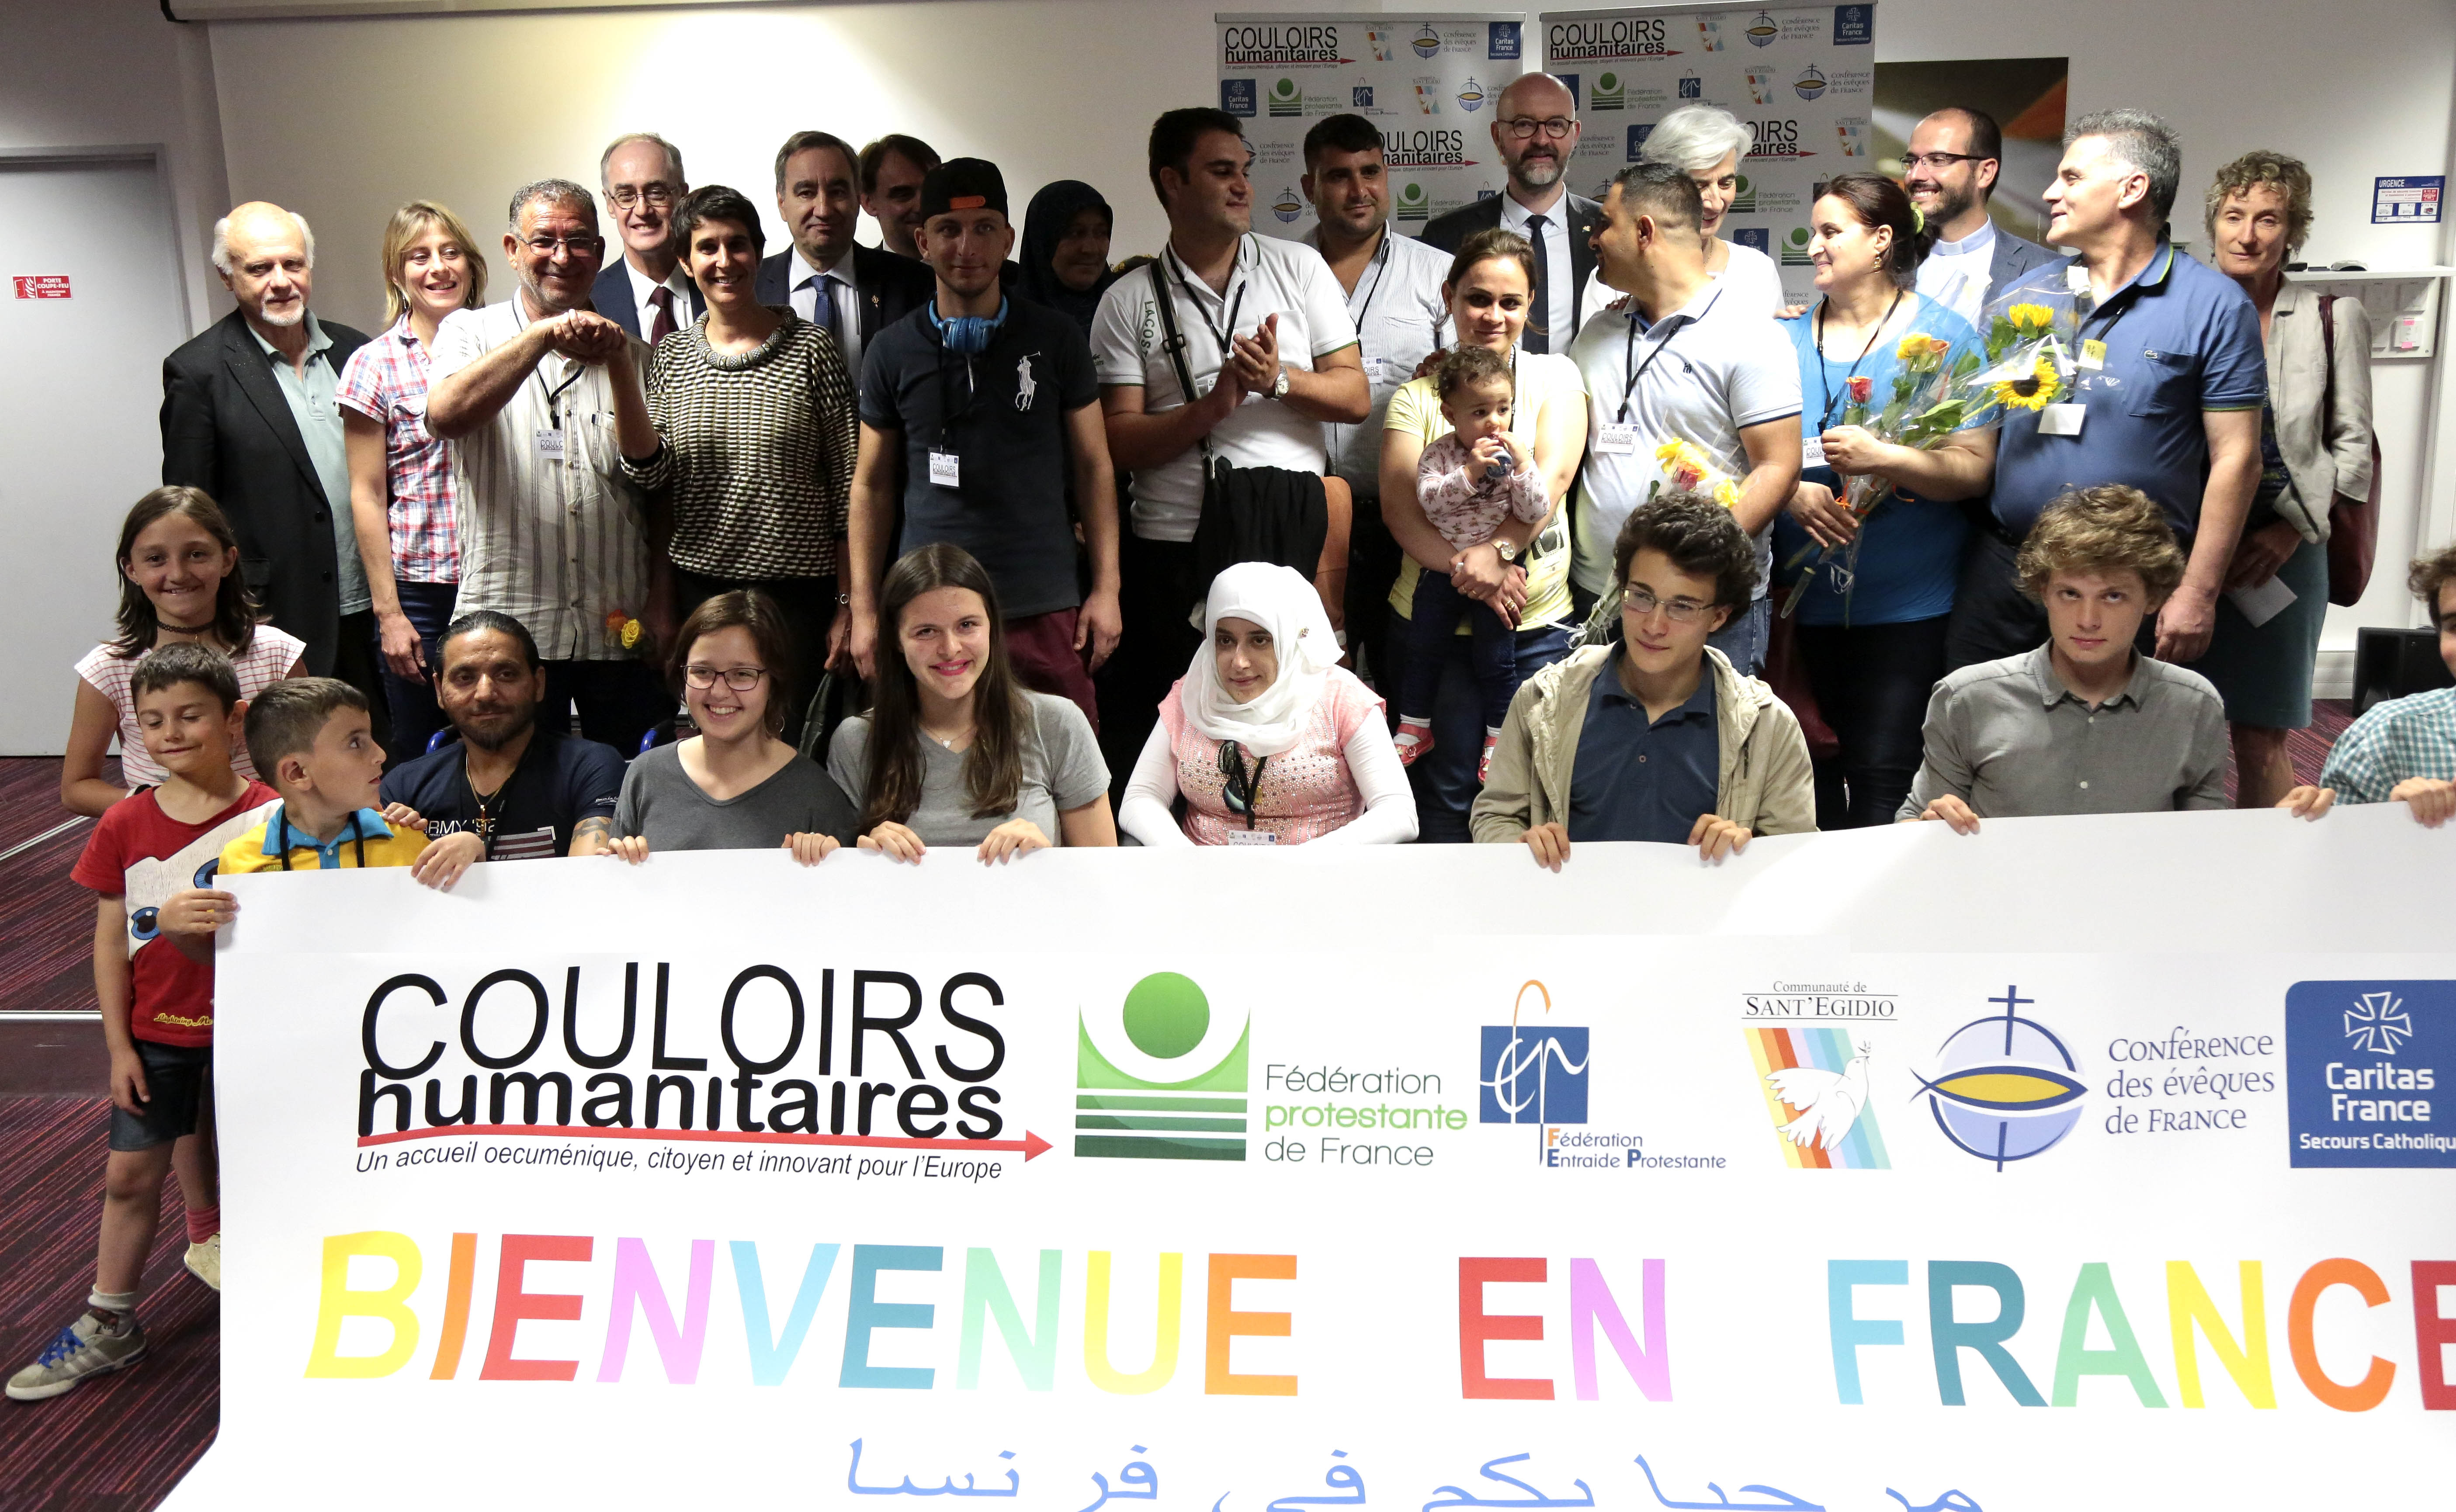 (c)FEP-FPF-Karine_Bouvatier_Couloirs humanitaires_15